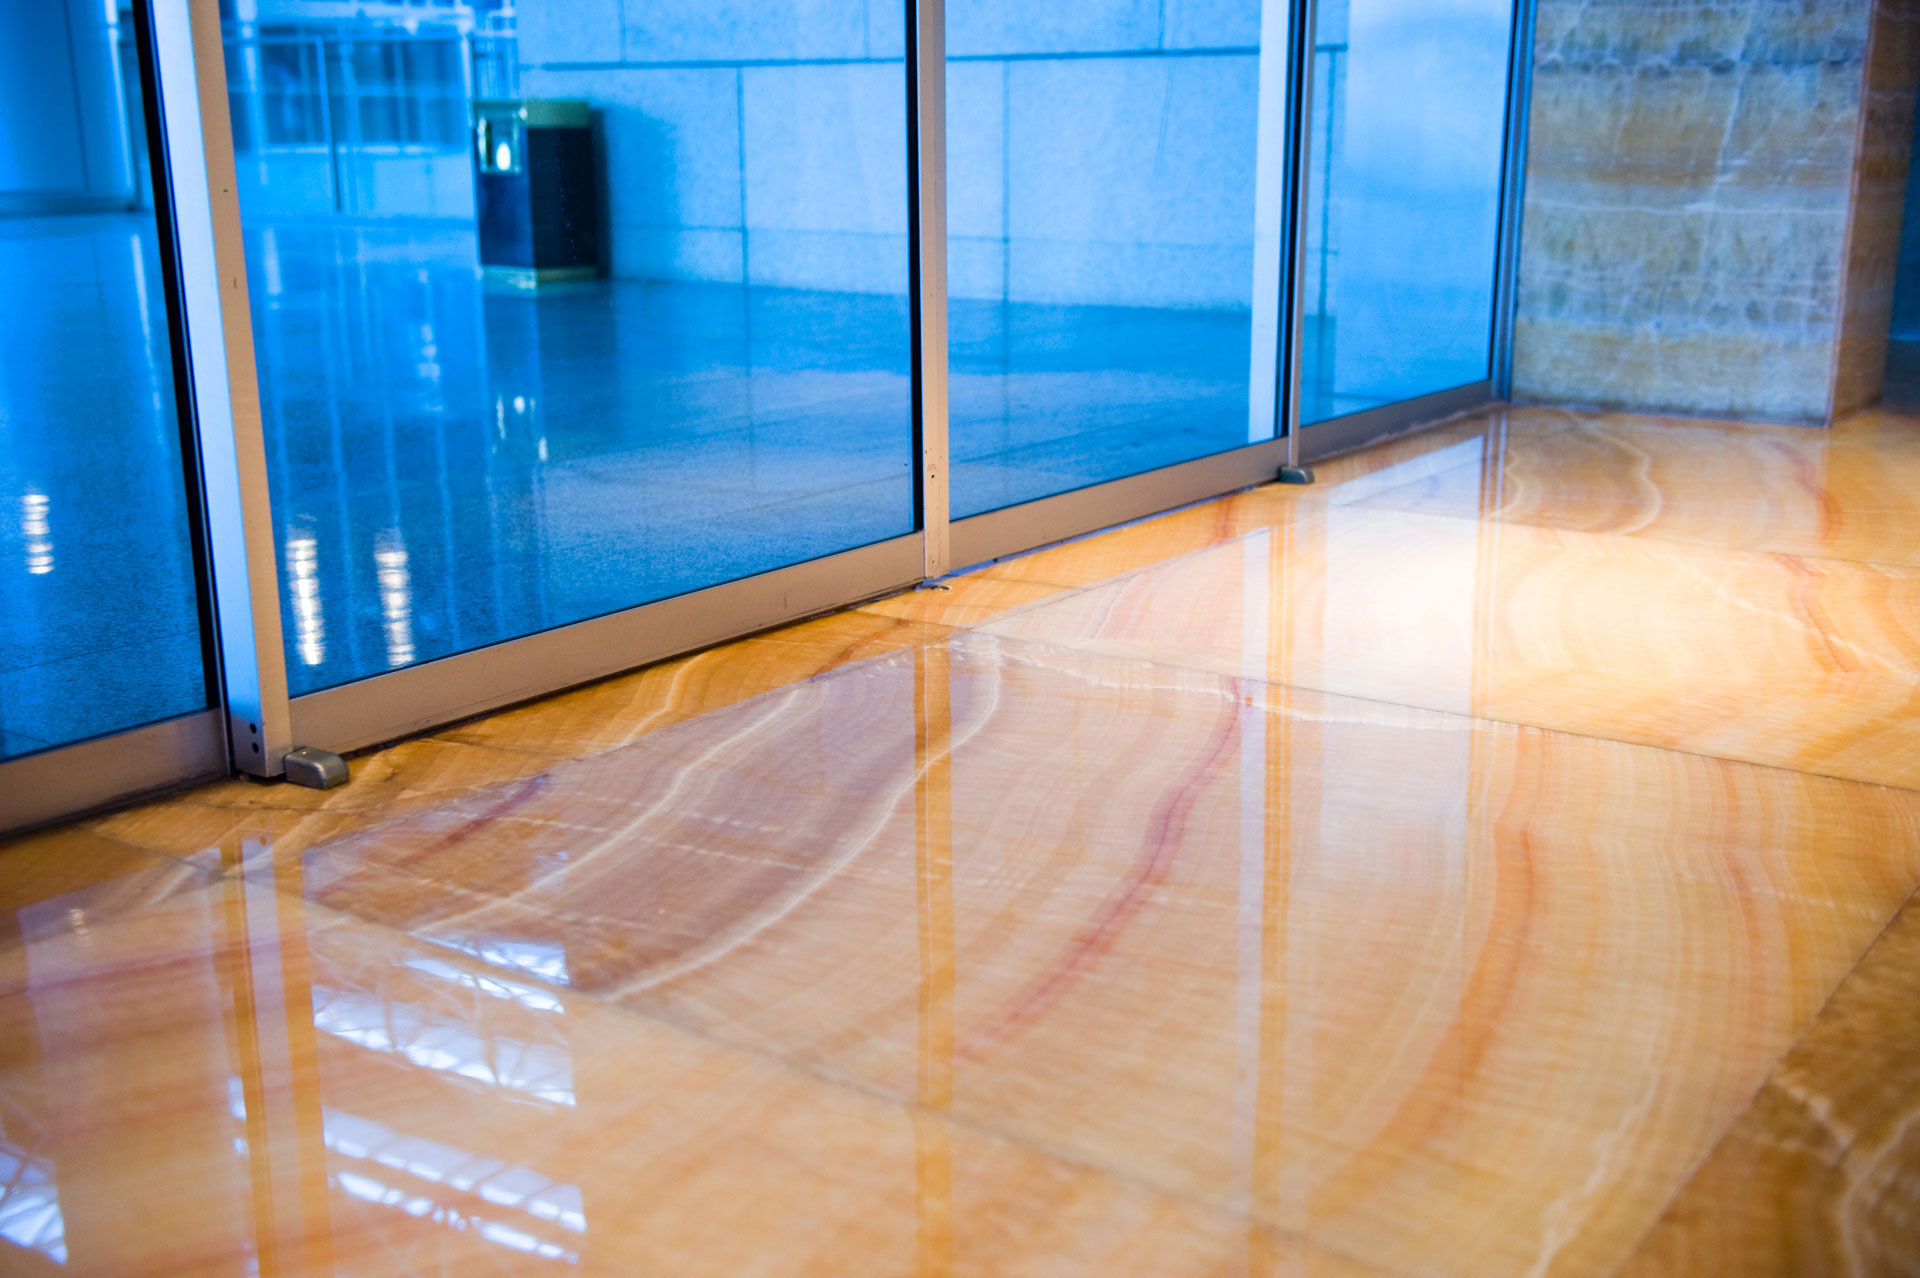 Sound Cleaning Commercial Floor Stripping Waxing Services Company